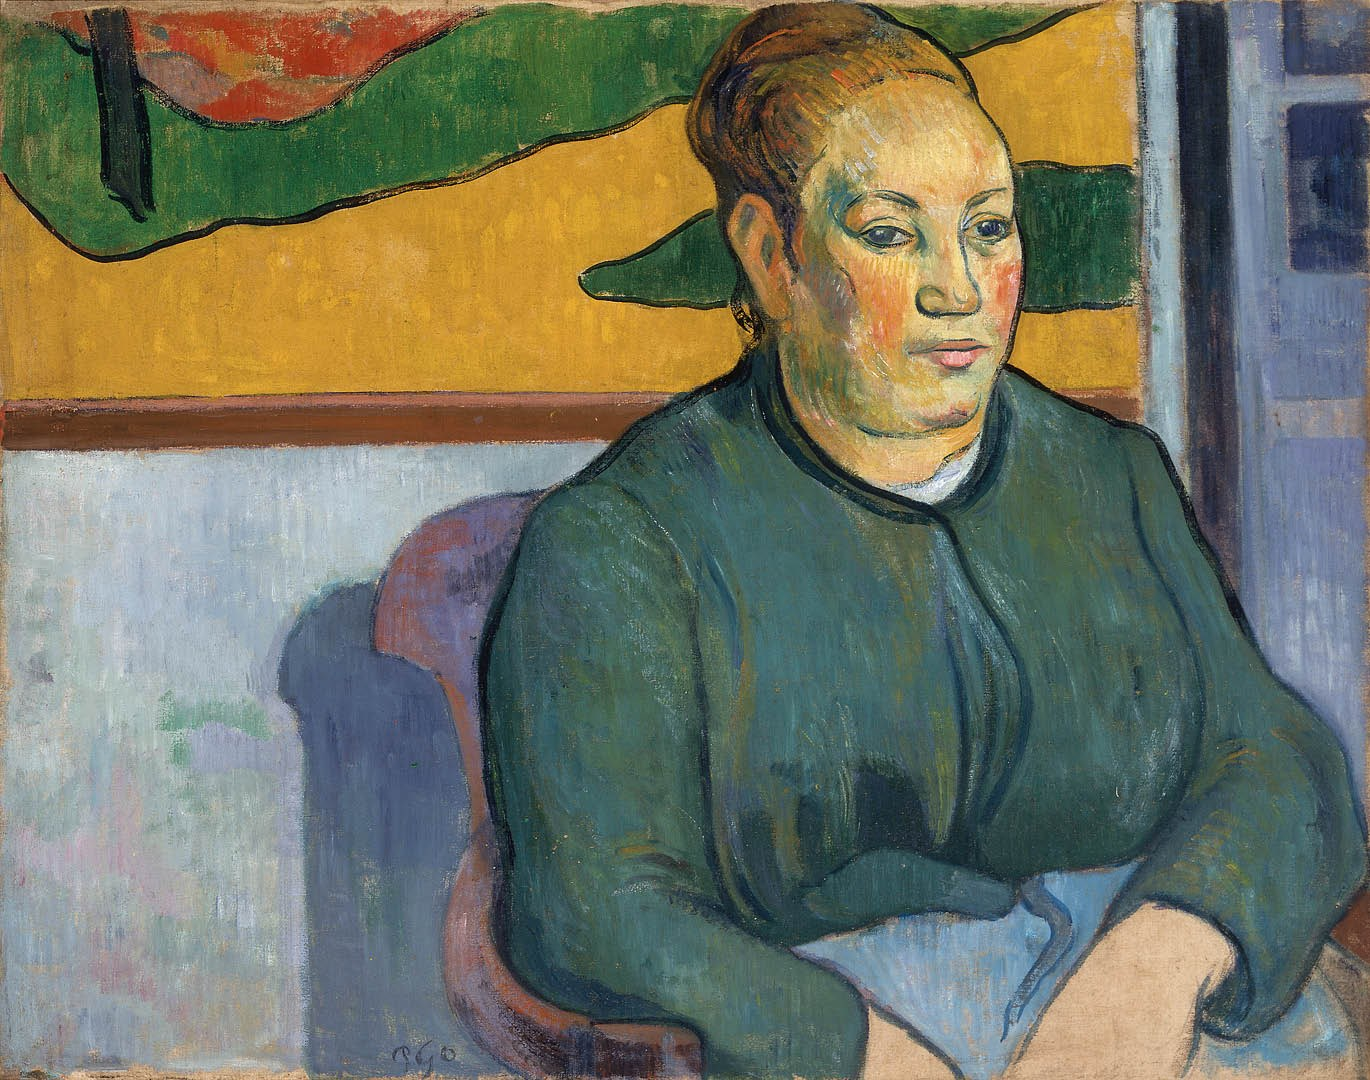 The Credit Suisse Exhibition Gauguin Portraits